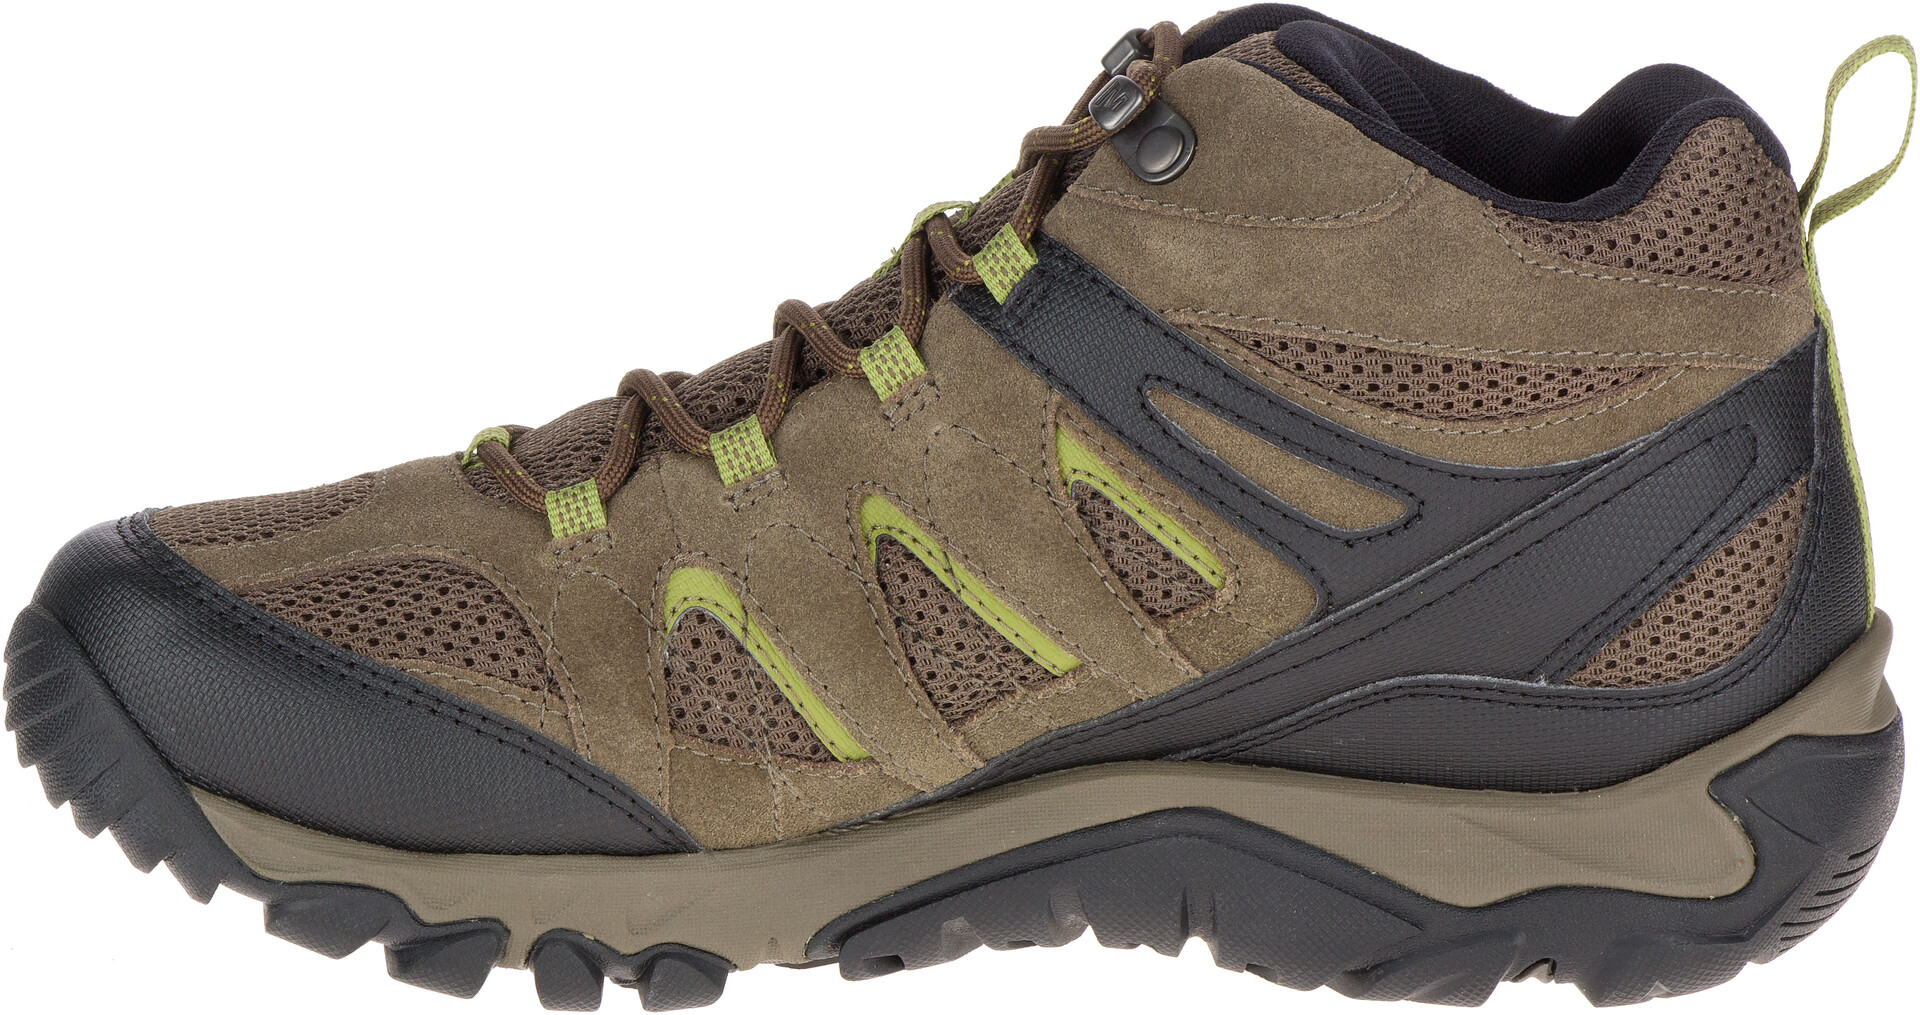 Chaussures Homme Outmost Marron Gtx Merrell Campz Sur Mid Vent CwdIW fbc0a1a7a98